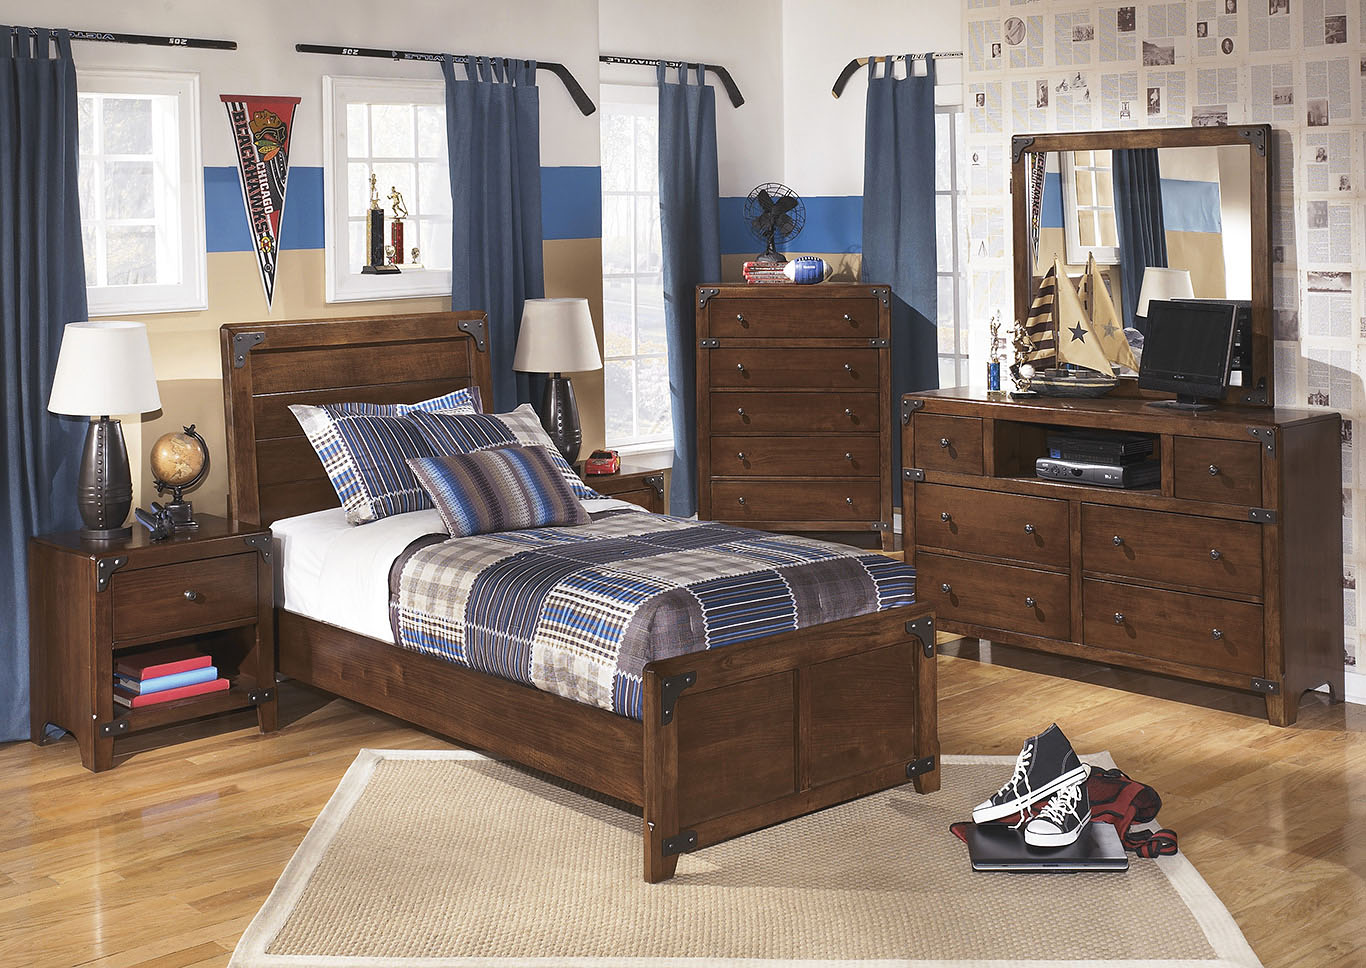 Delburne Twin Panel Bed w/Dresser, Mirror, Chest & 2 Nightstands,Signature Design By Ashley